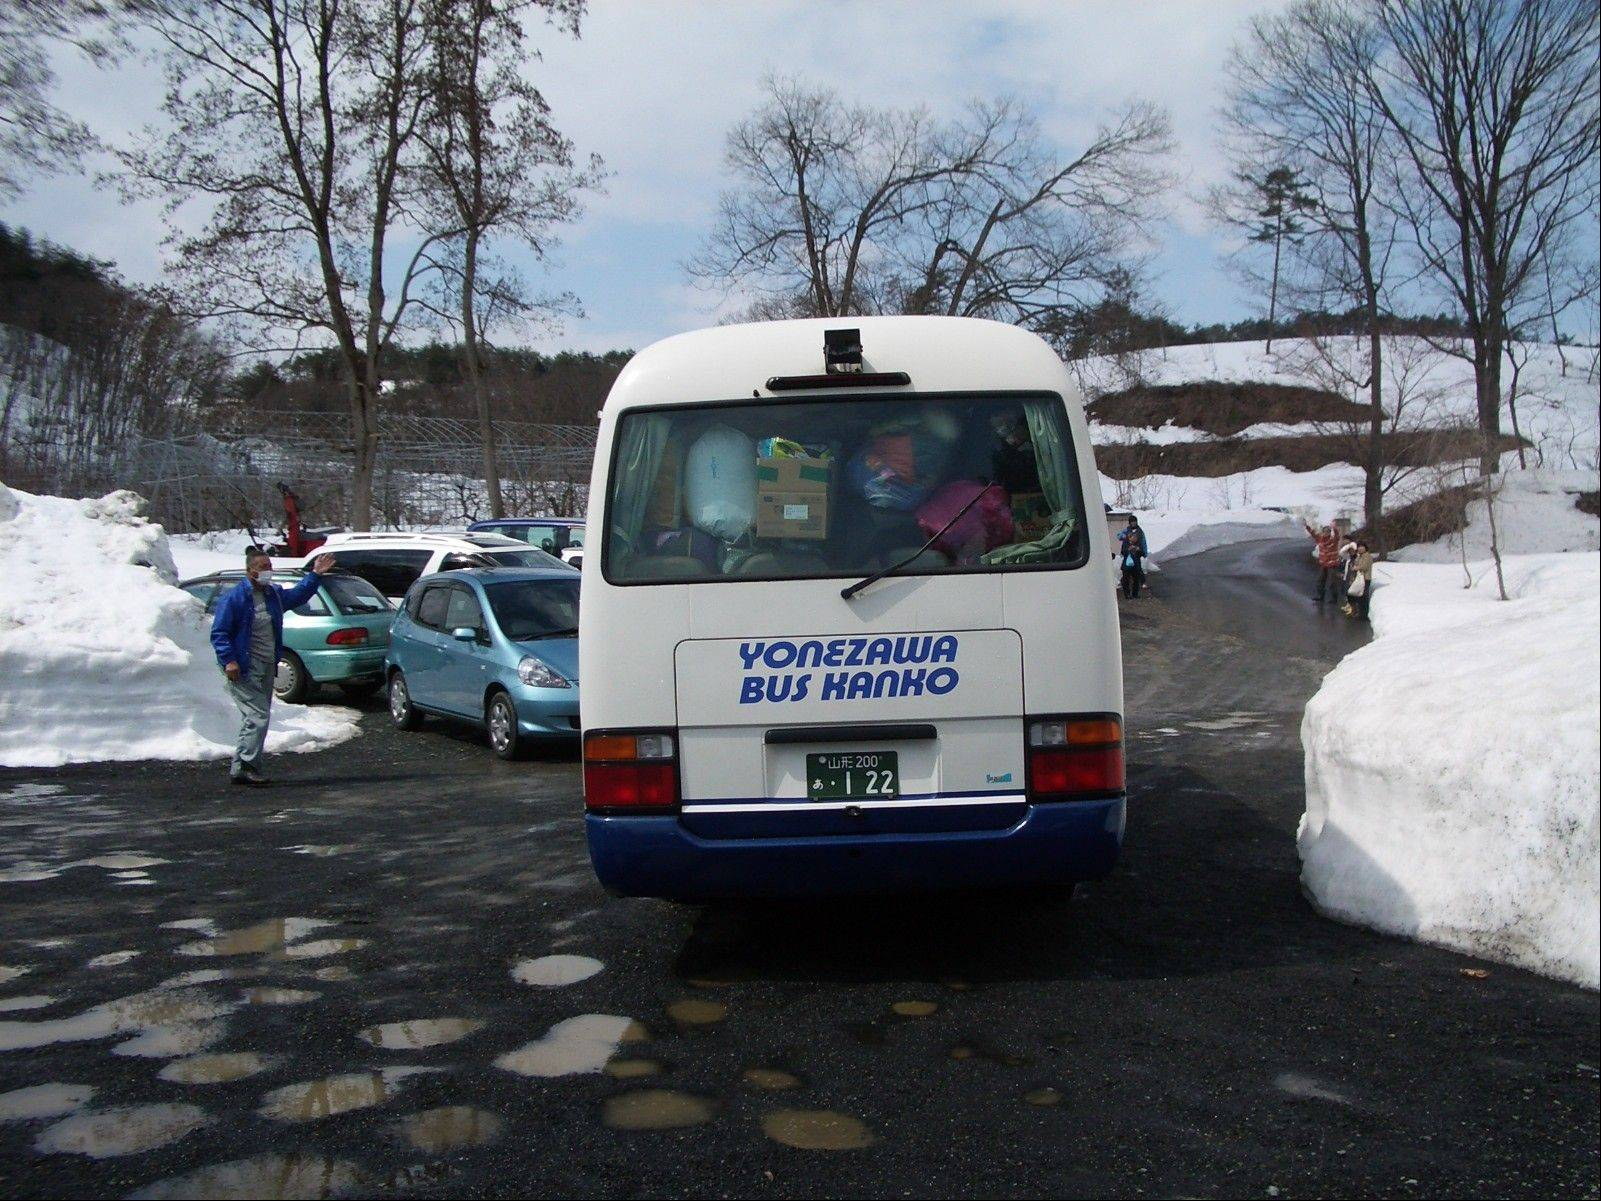 When 70 people evacuated their homes, the journey in March led through the snowy mountains.